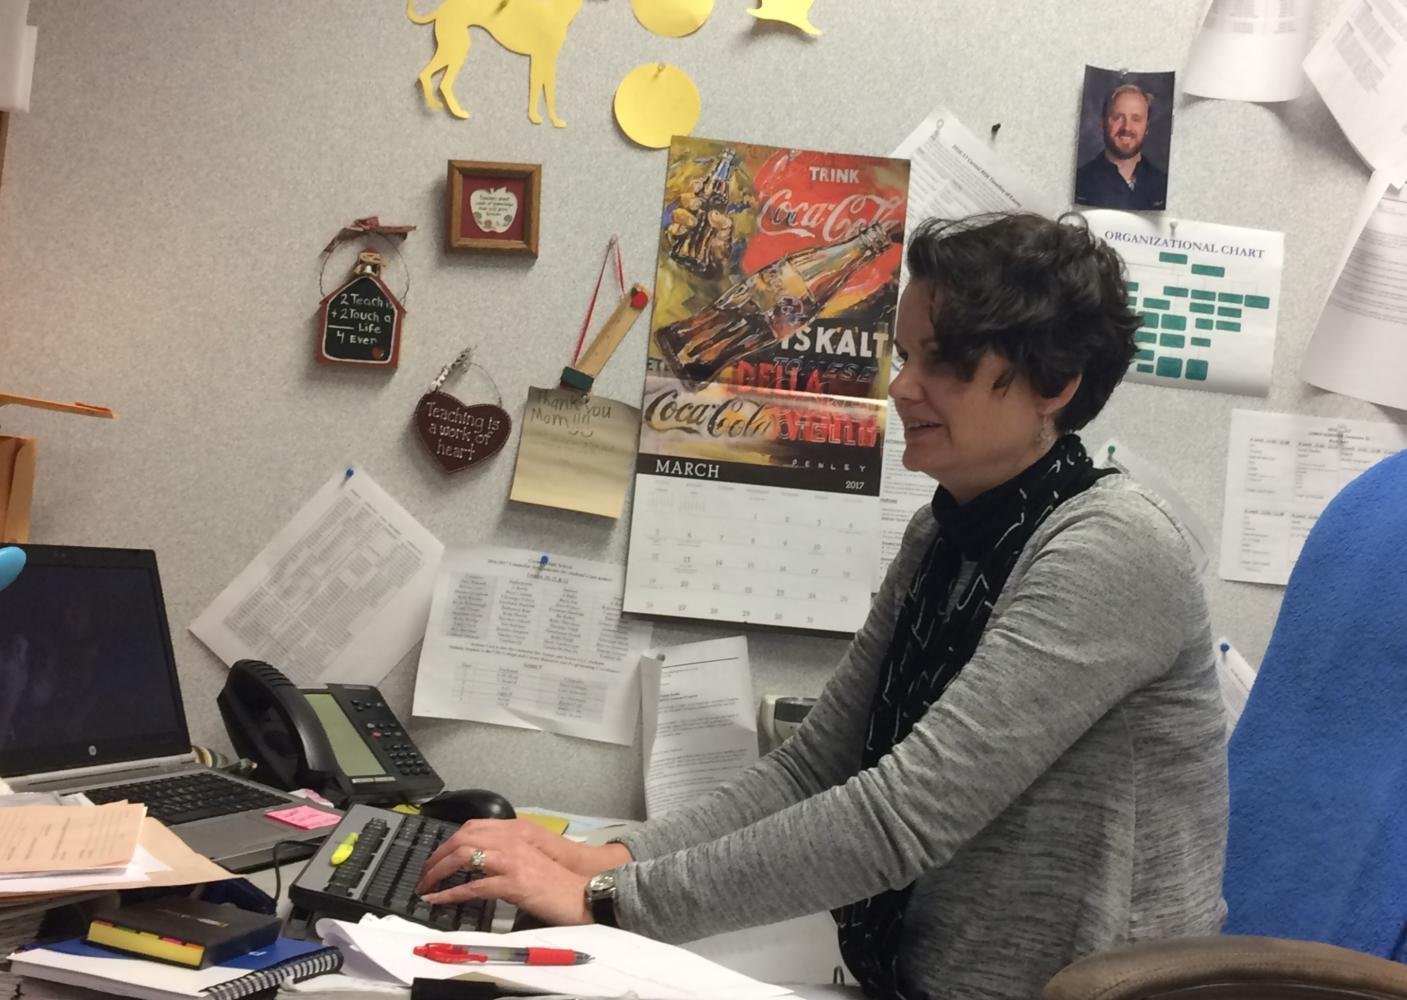 Math department chair Jacinda Sohalski quietly works at her desk. For the past few weeks, she has been working actively to rework the curriculum around the new textbooks.